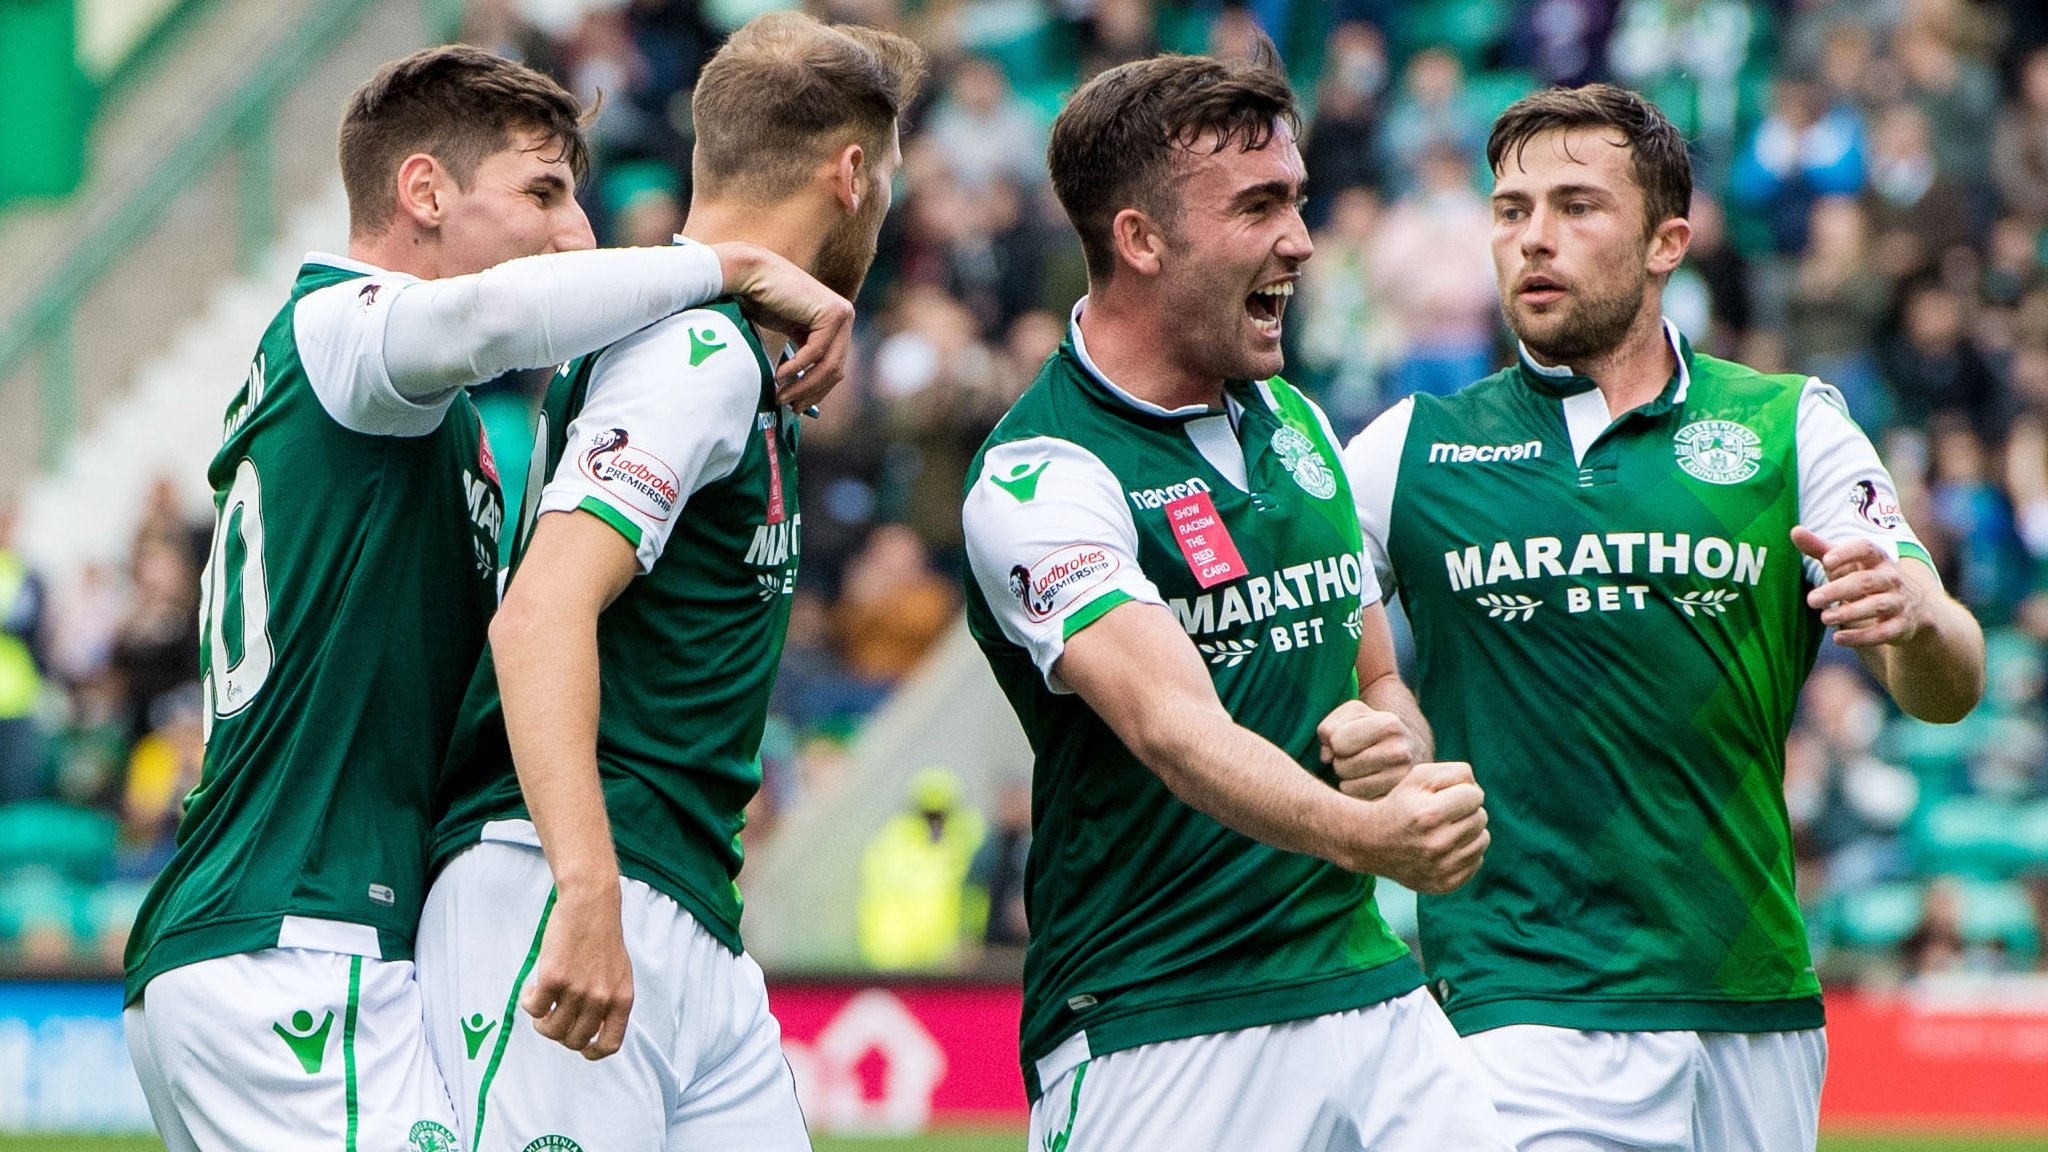 Hibernian report return to profit following first season back in top flight